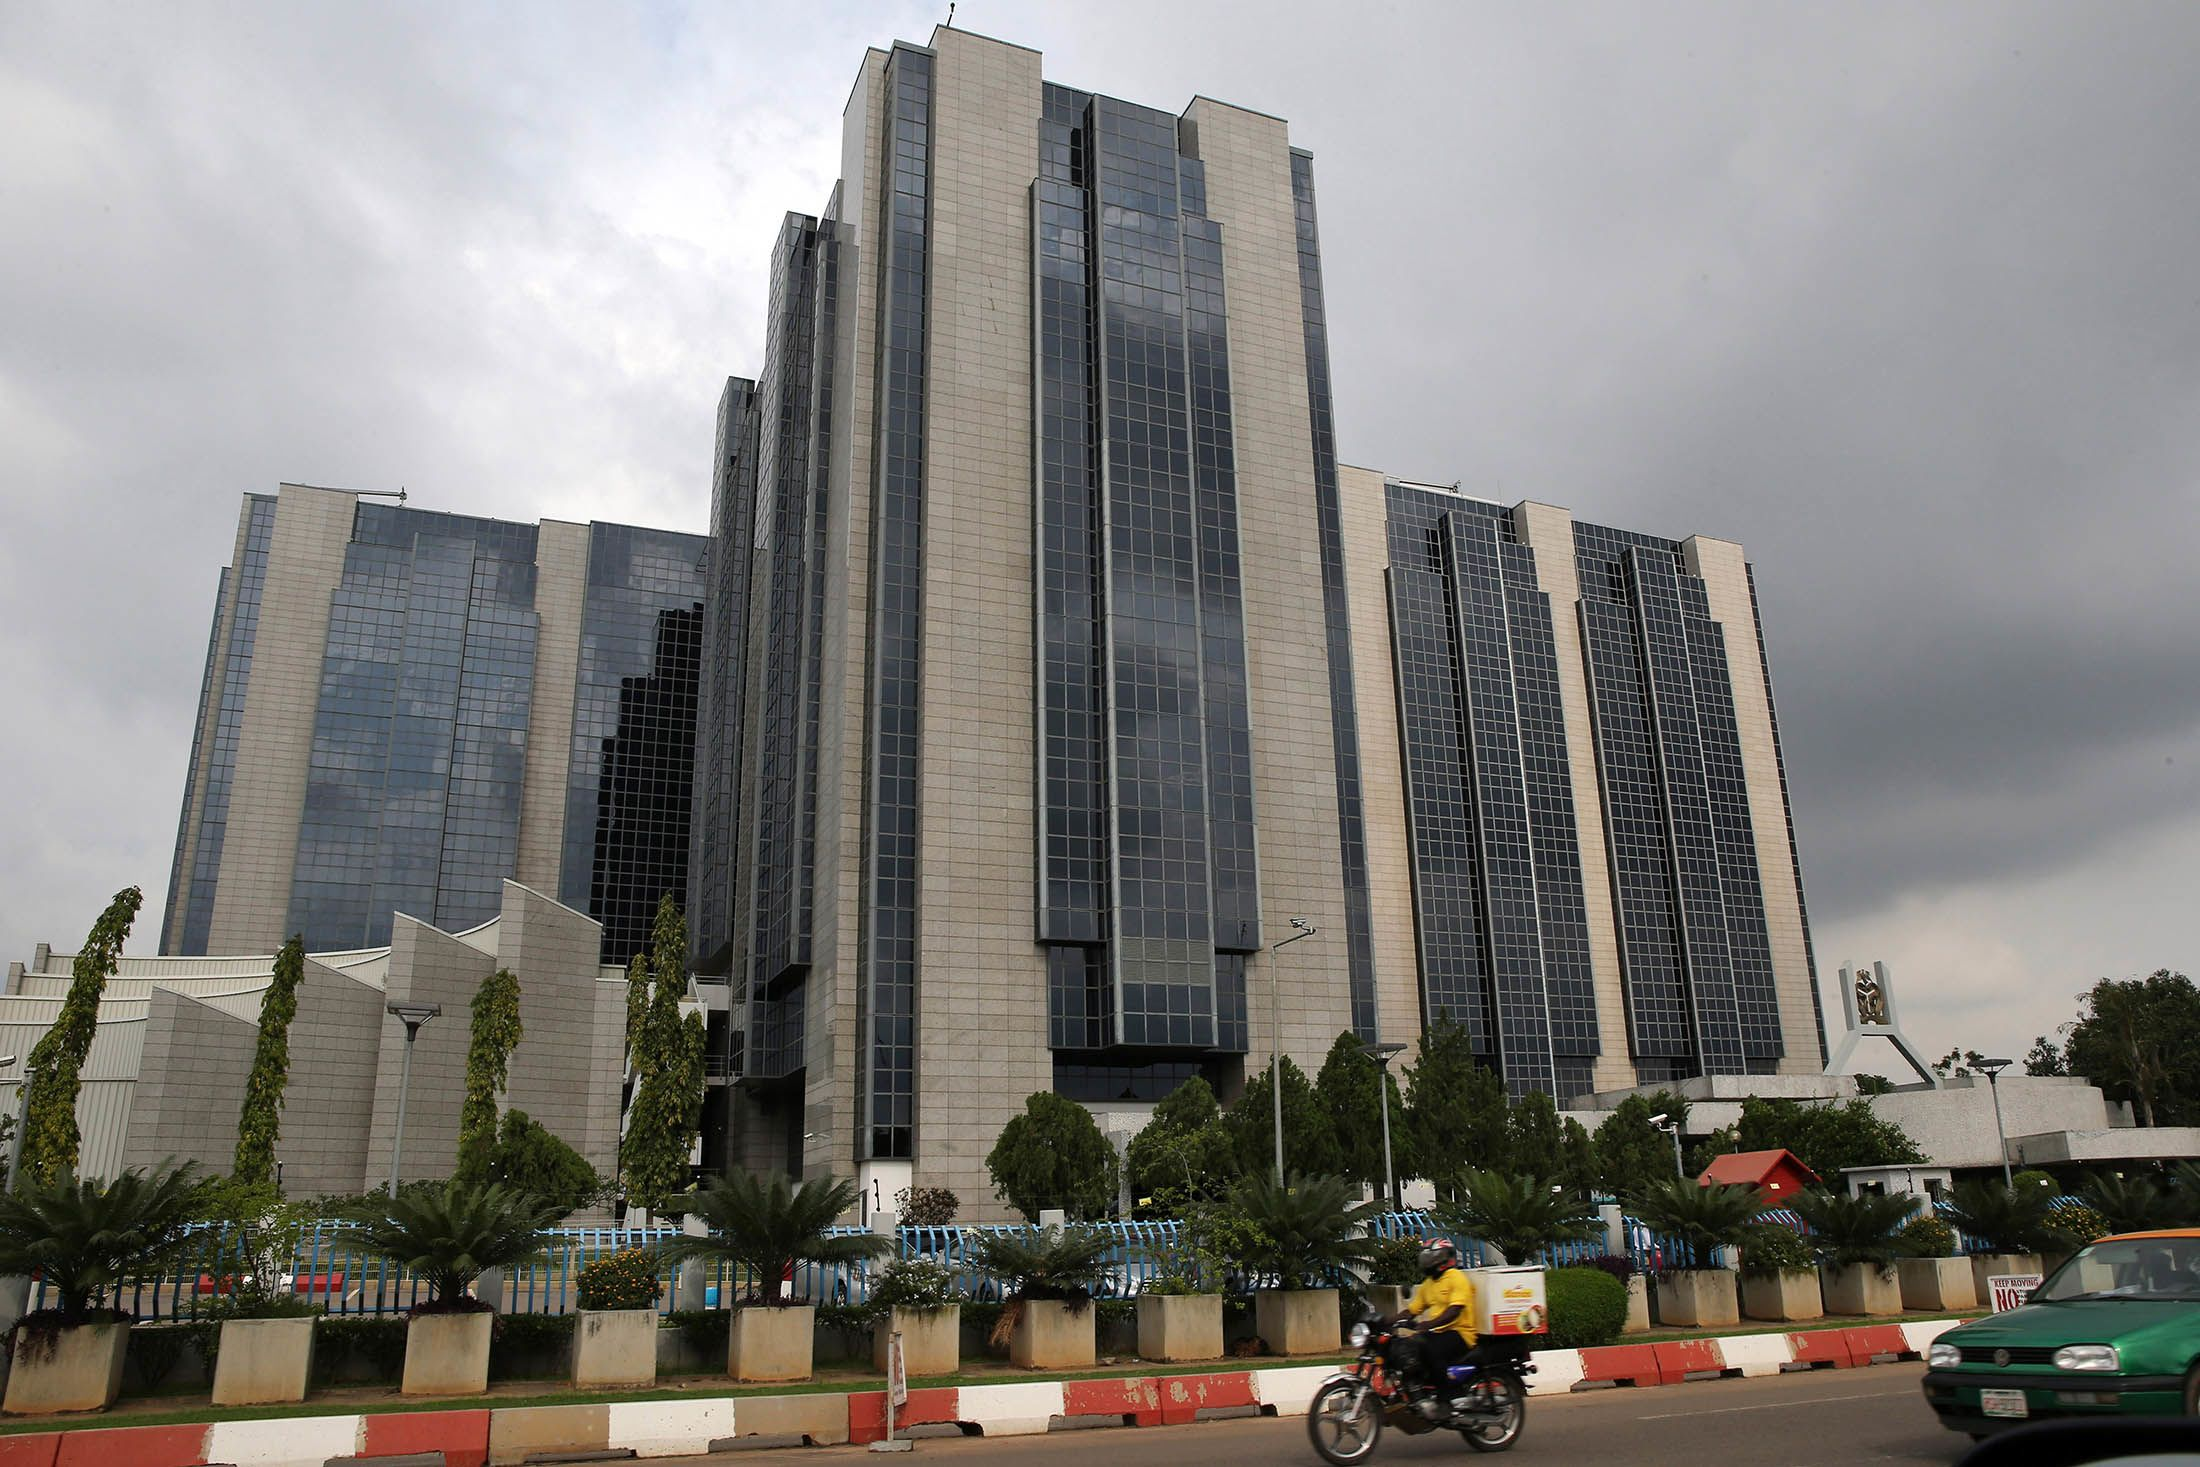 The headquarters of the Nigerian central bank in Abuja, Nigeria.